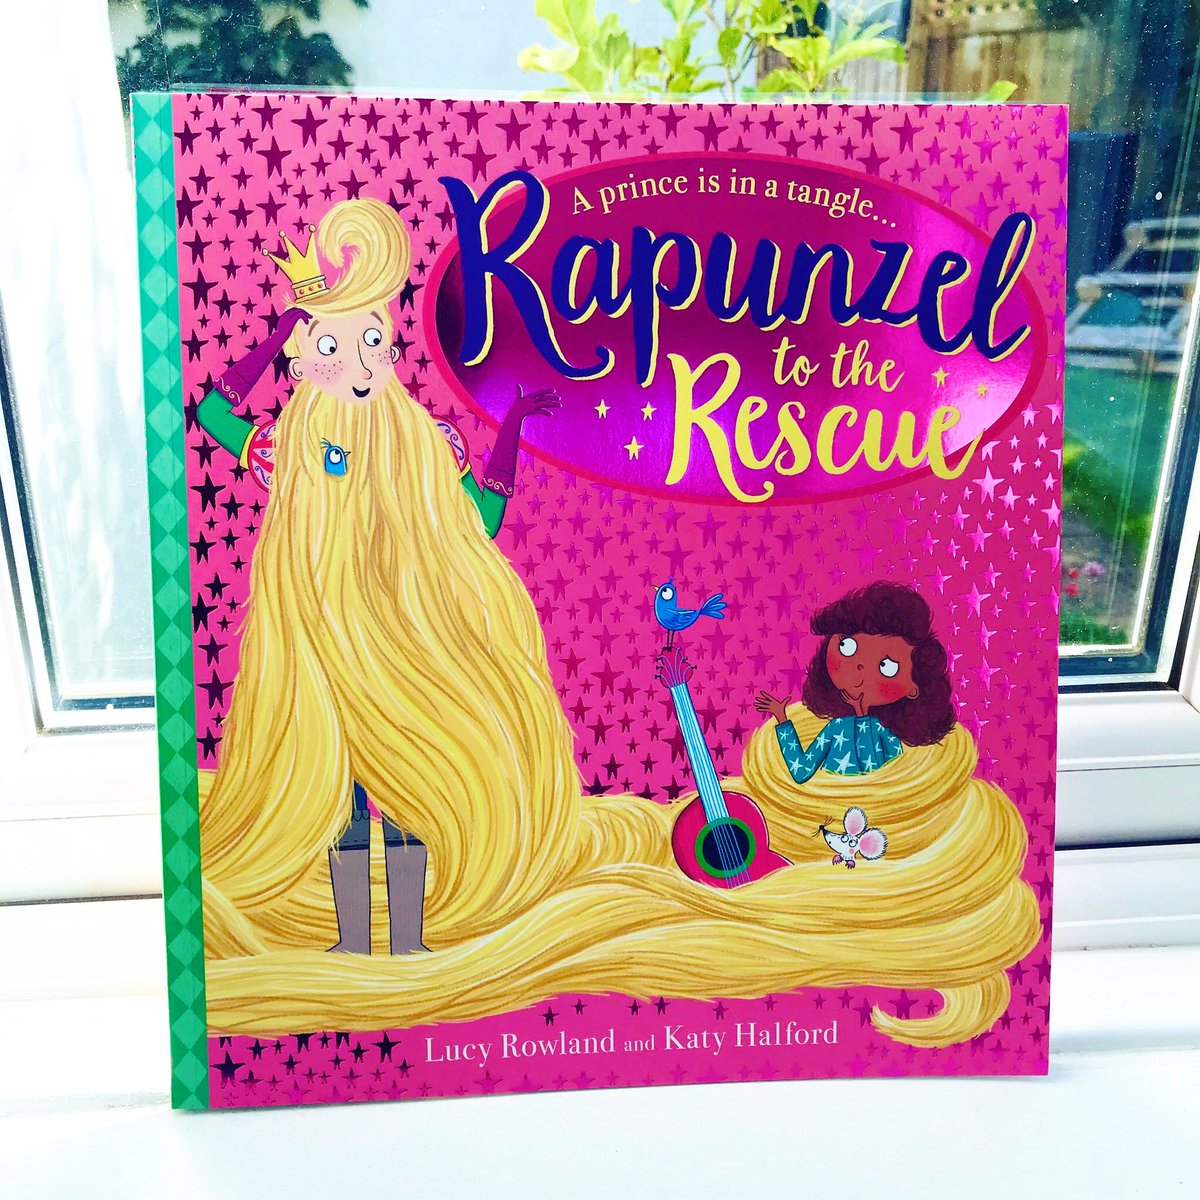 ✨B O O K G I V E A W A Y✨ @lucymayrowland & I have decided to #giveaway another signed copy of Rapunzel to the Rescue! To #win a copy simply like & retweet🤗 Competition ends midnight Sun 20th Sept. Good luck🍀 #rapunzeltotherescue #kidlit #competition @scholasticuk